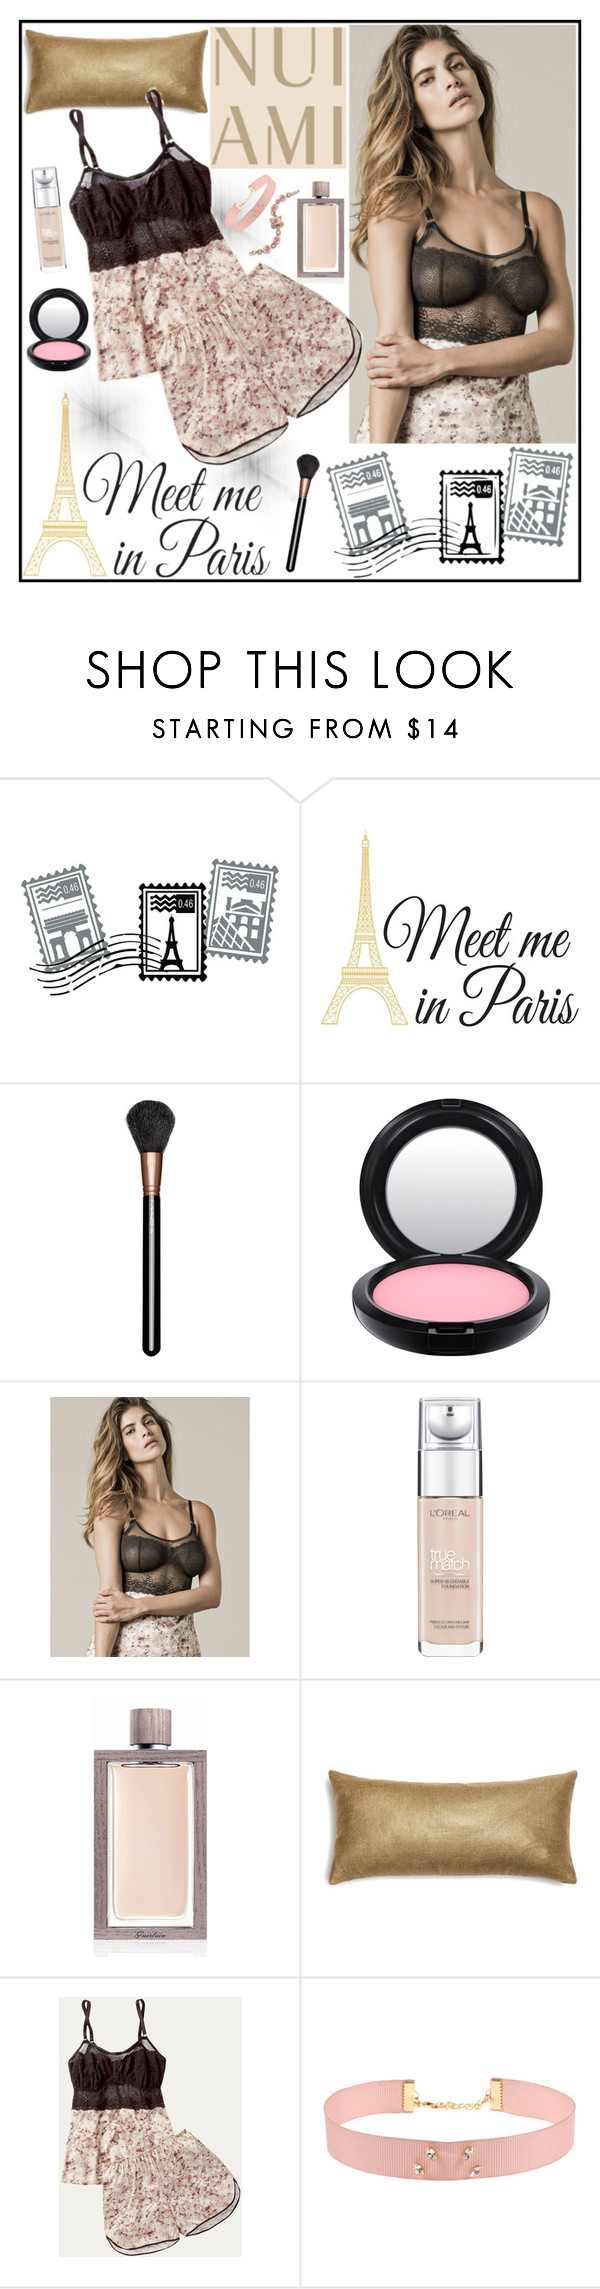 """Nui Ami 1"" by gaby-mil ❤ liked on Polyvore featuring Dot & Bo, WallPops, MAC Cosmetics, L'Oréal Paris, Guerlain, Johnny Loves Rosie, Marchesa, lingerie and nuiami"